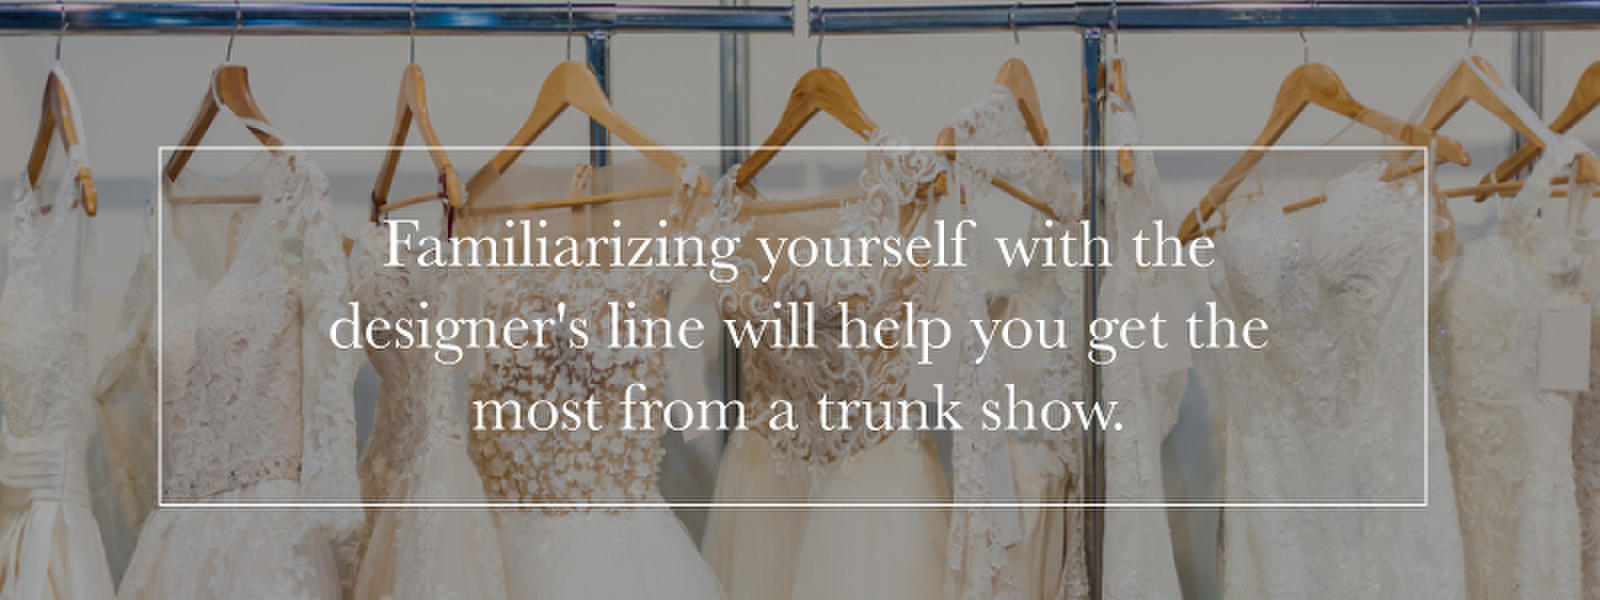 dress rack and text about familiarizing yourself with designer line